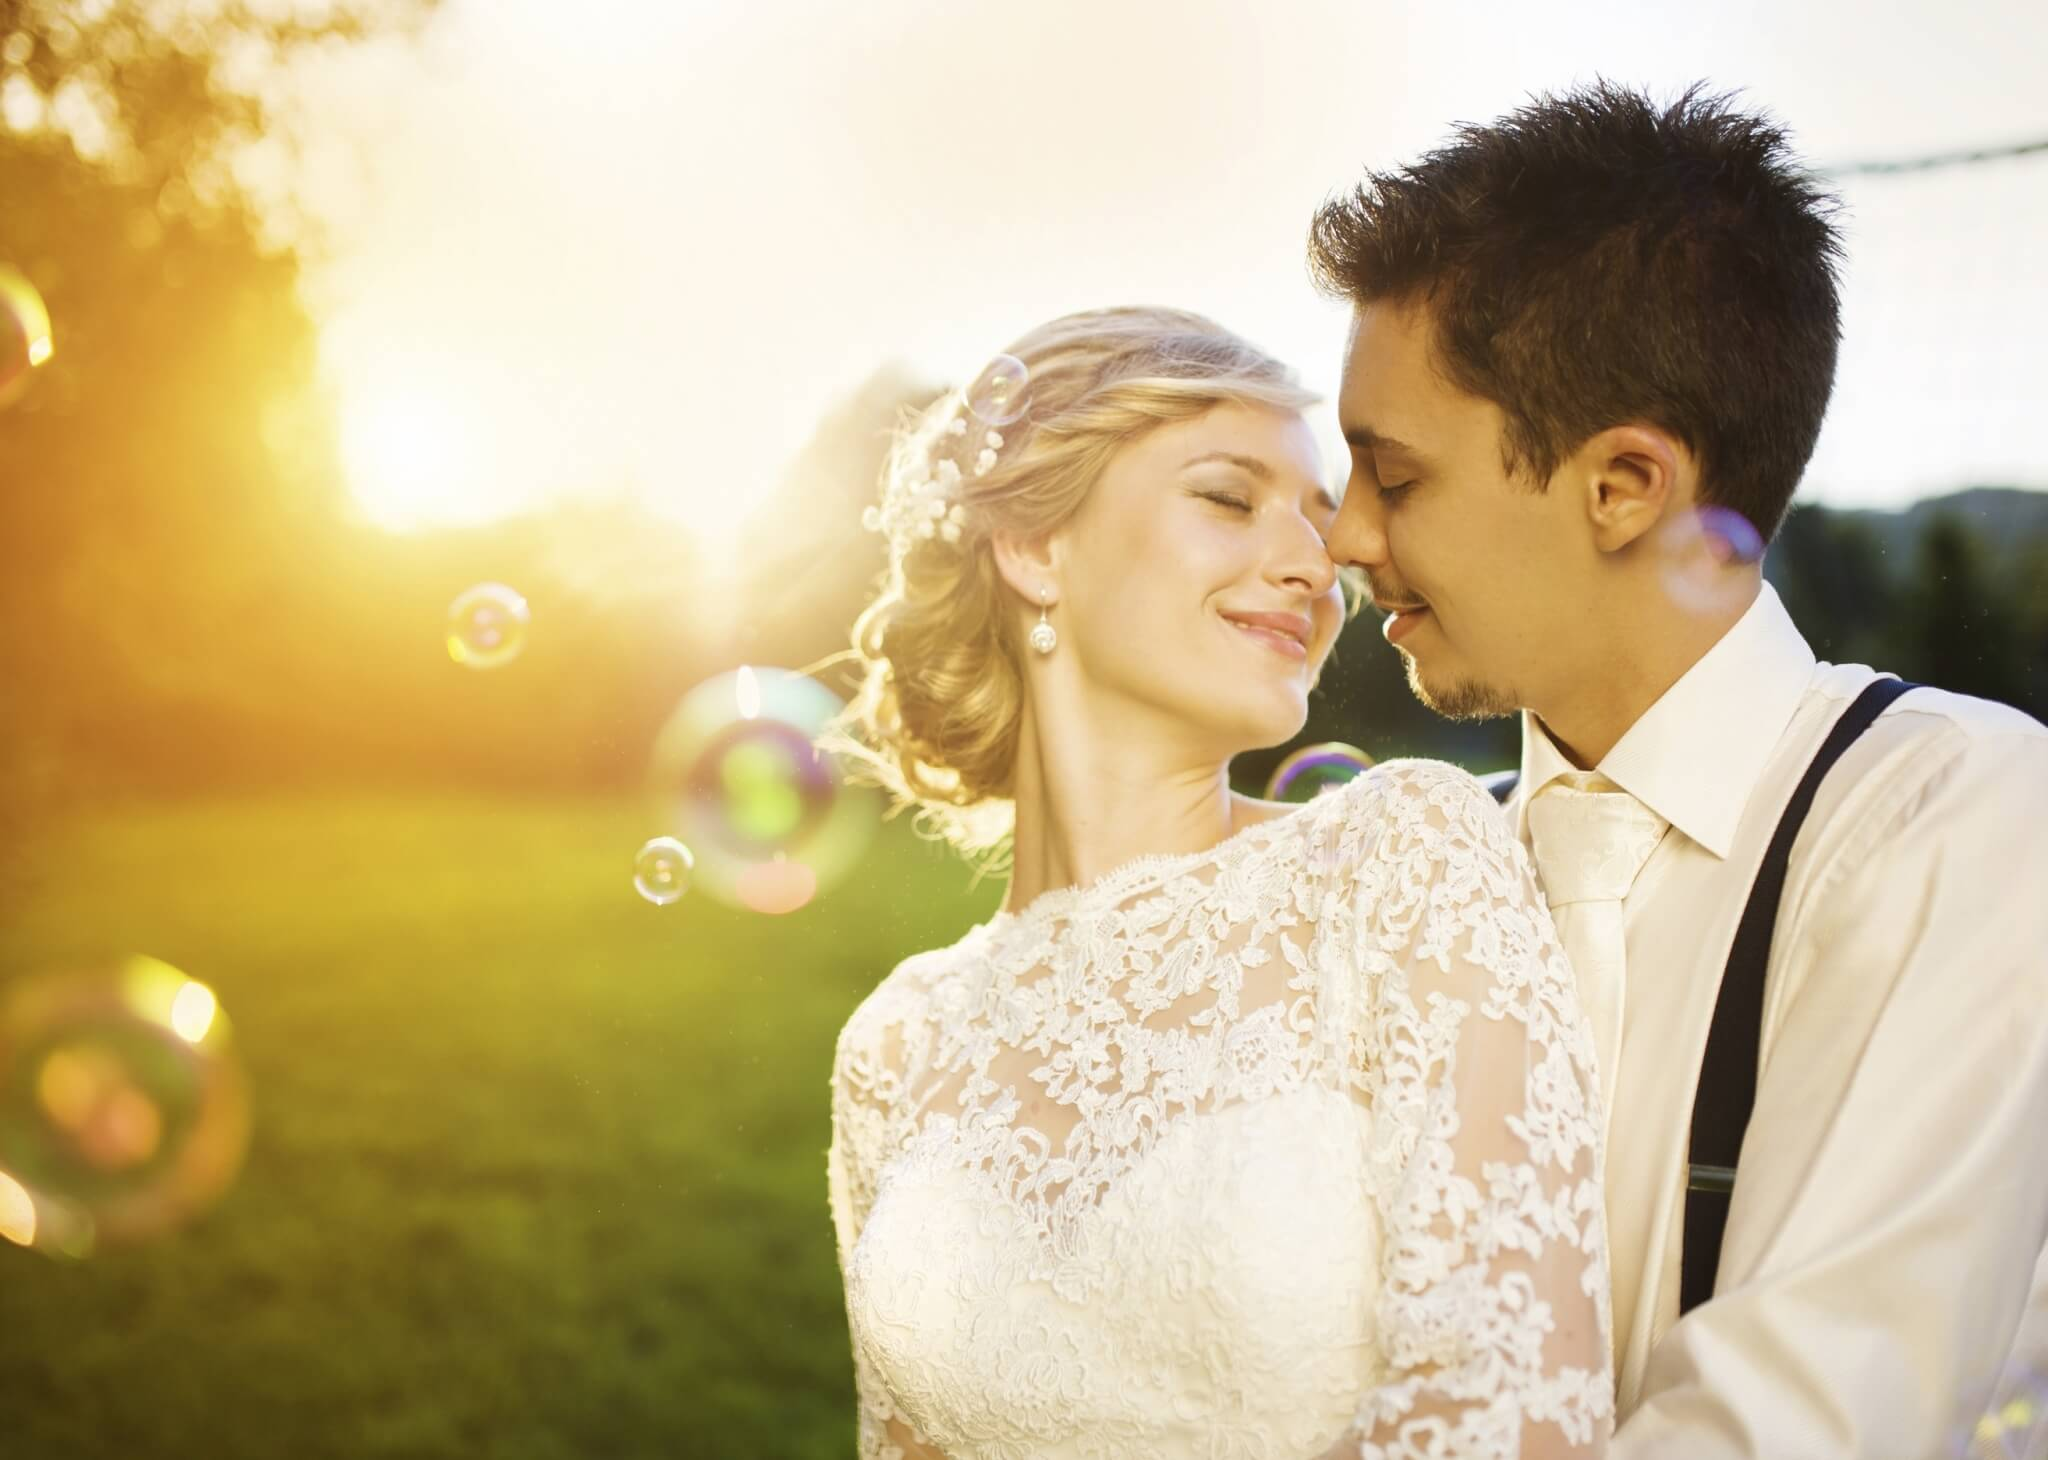 Young-wedding-couple-on-a-summer-meadow-000056962578_Large.jpg.jpeg